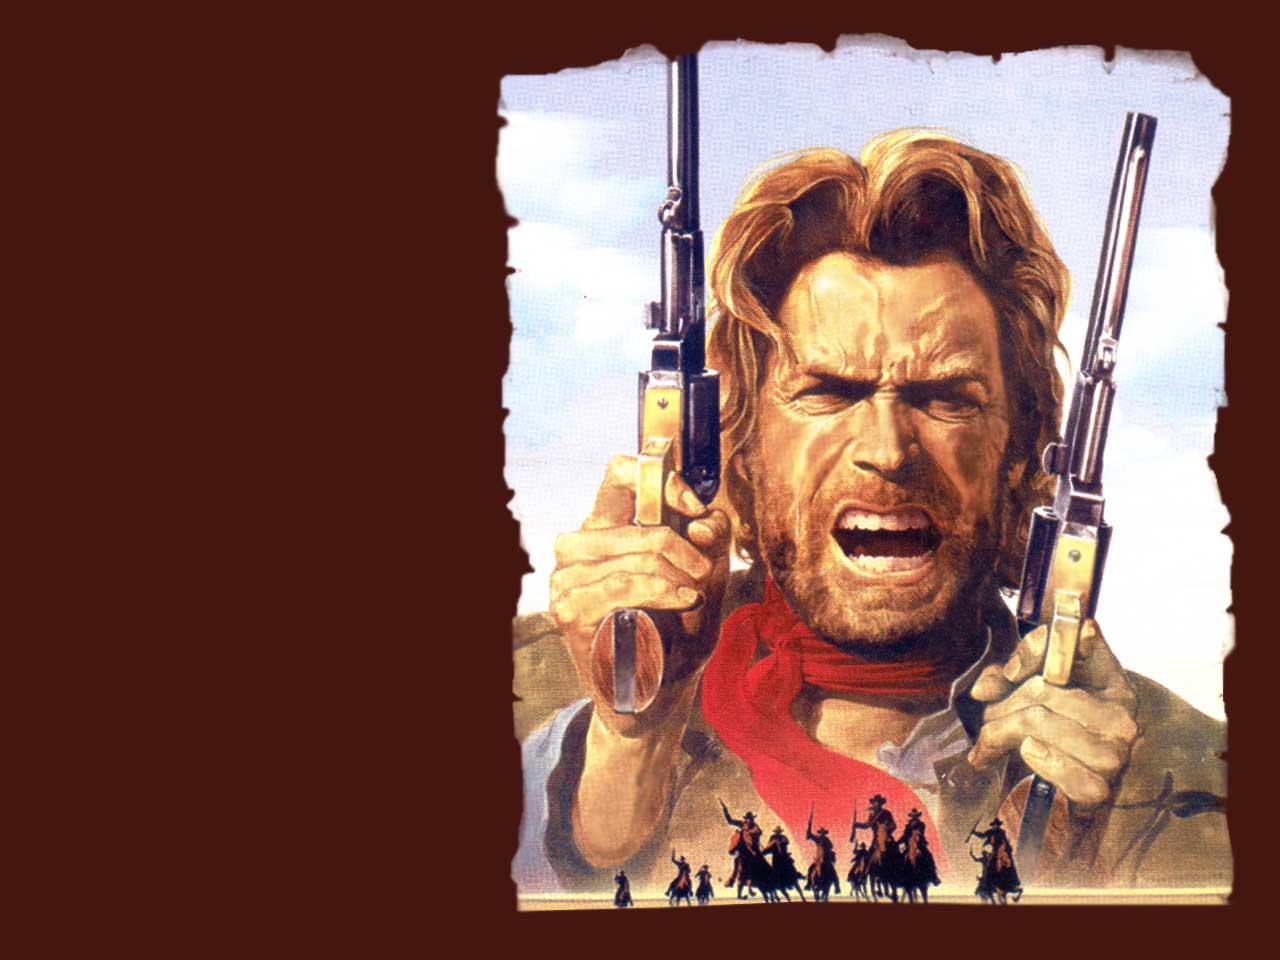 The Outlaw Josey Wales Wallpaper Wallpapers 1280x960